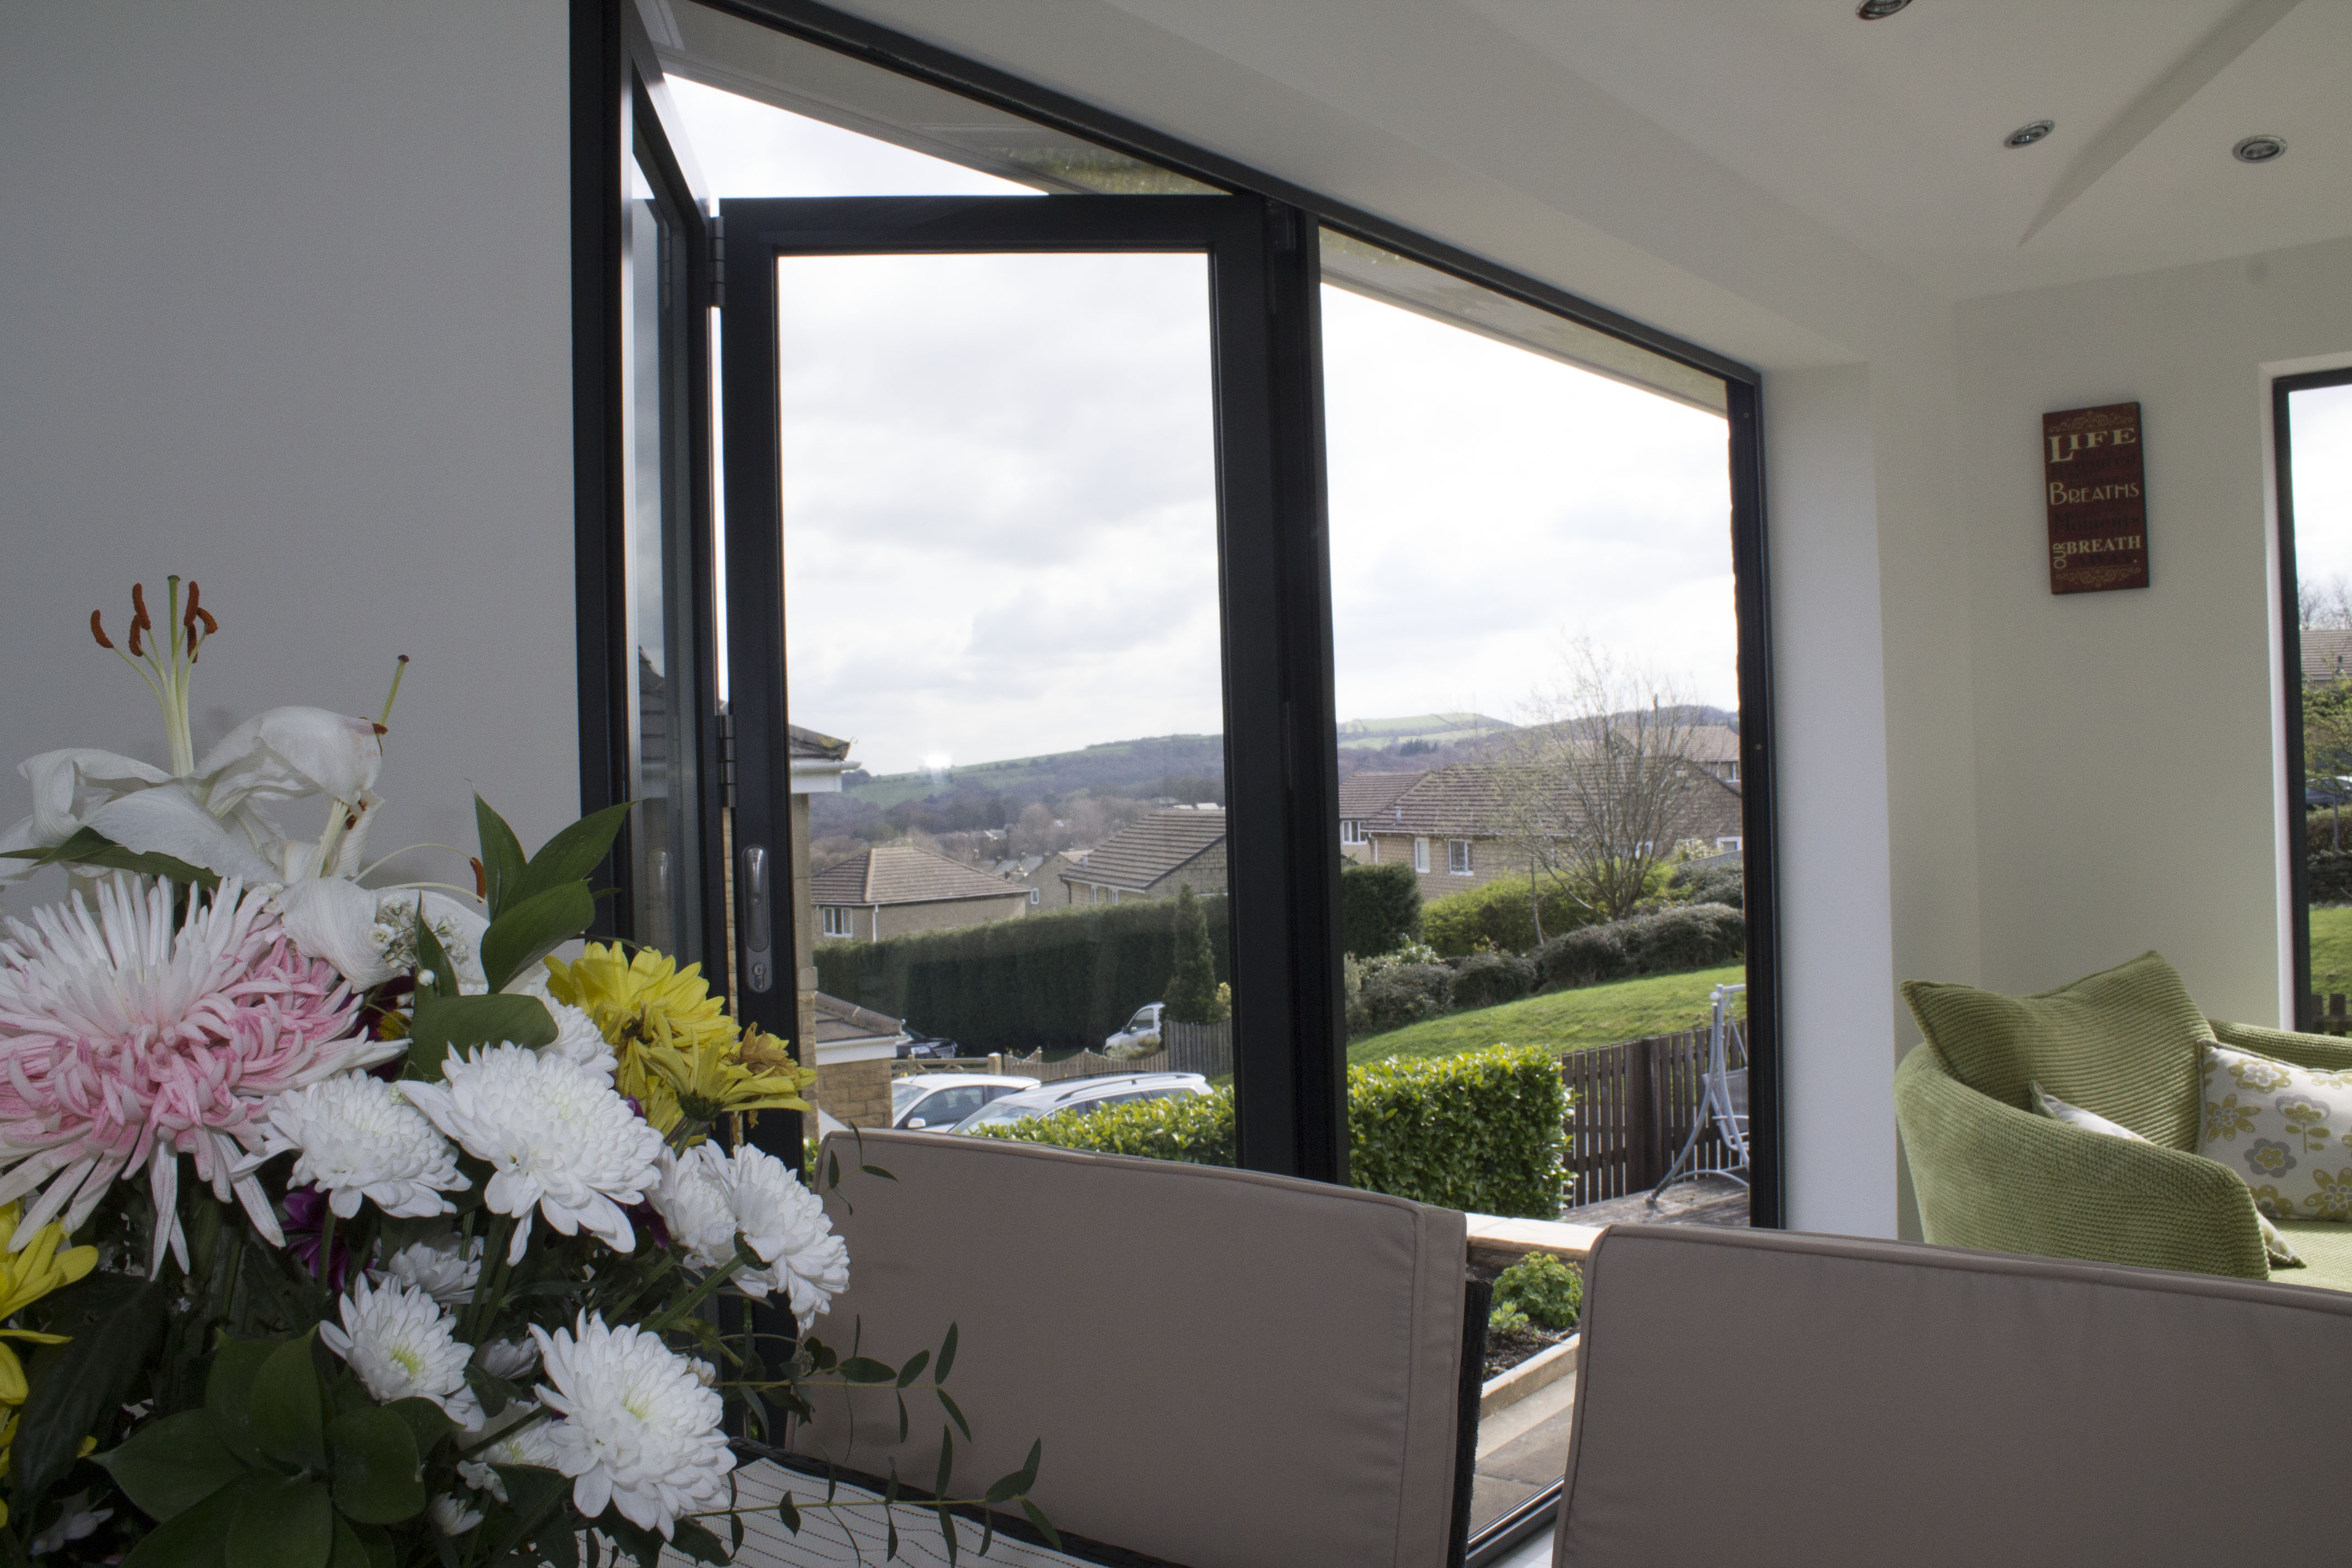 Gallery of Recent Projects : clearview doors meltham - pezcame.com